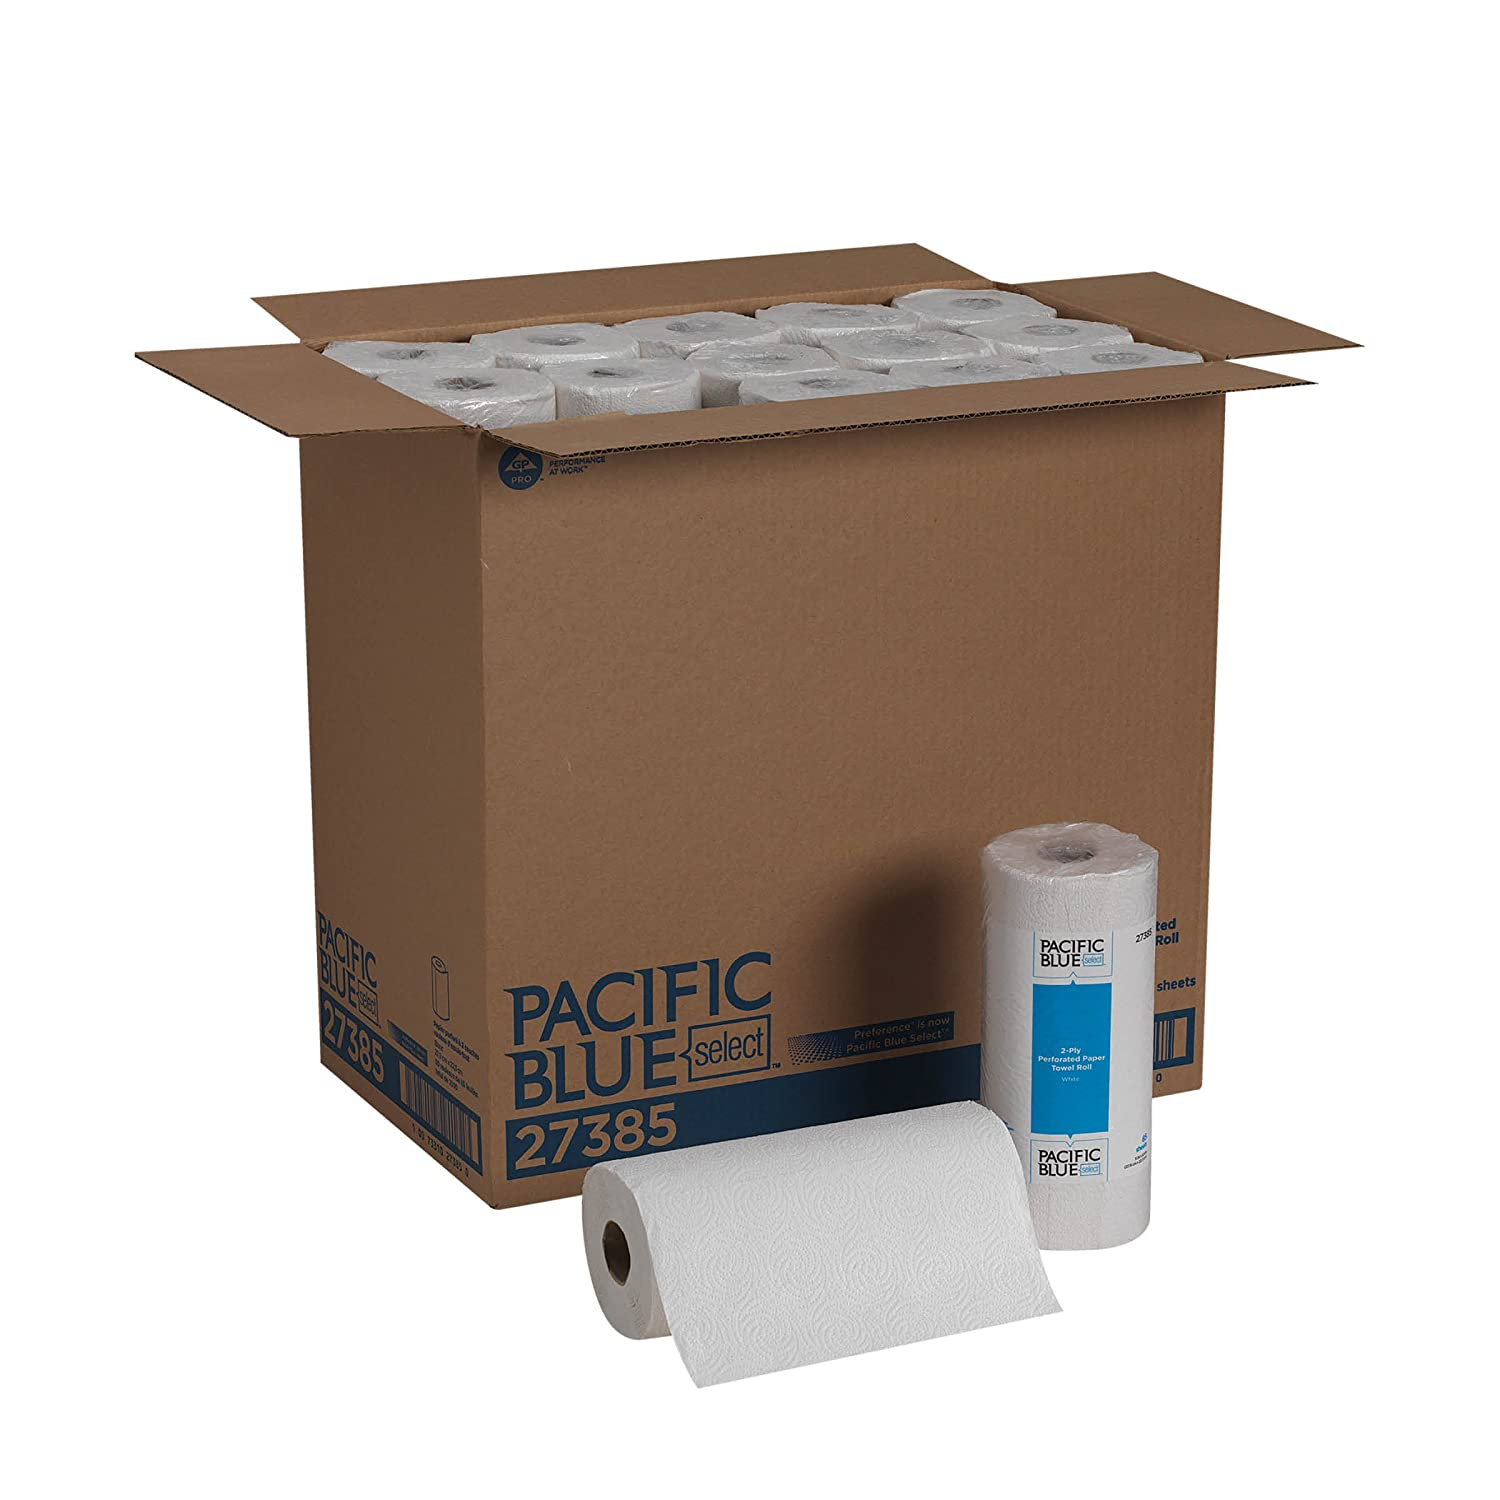 Pacific Blue Select 2-Ply Perforated Paper Towel Roll (Previously Preference) by GP PRO, White, 27385, 85 Sheets Per Roll, 30 Rolls Per Case